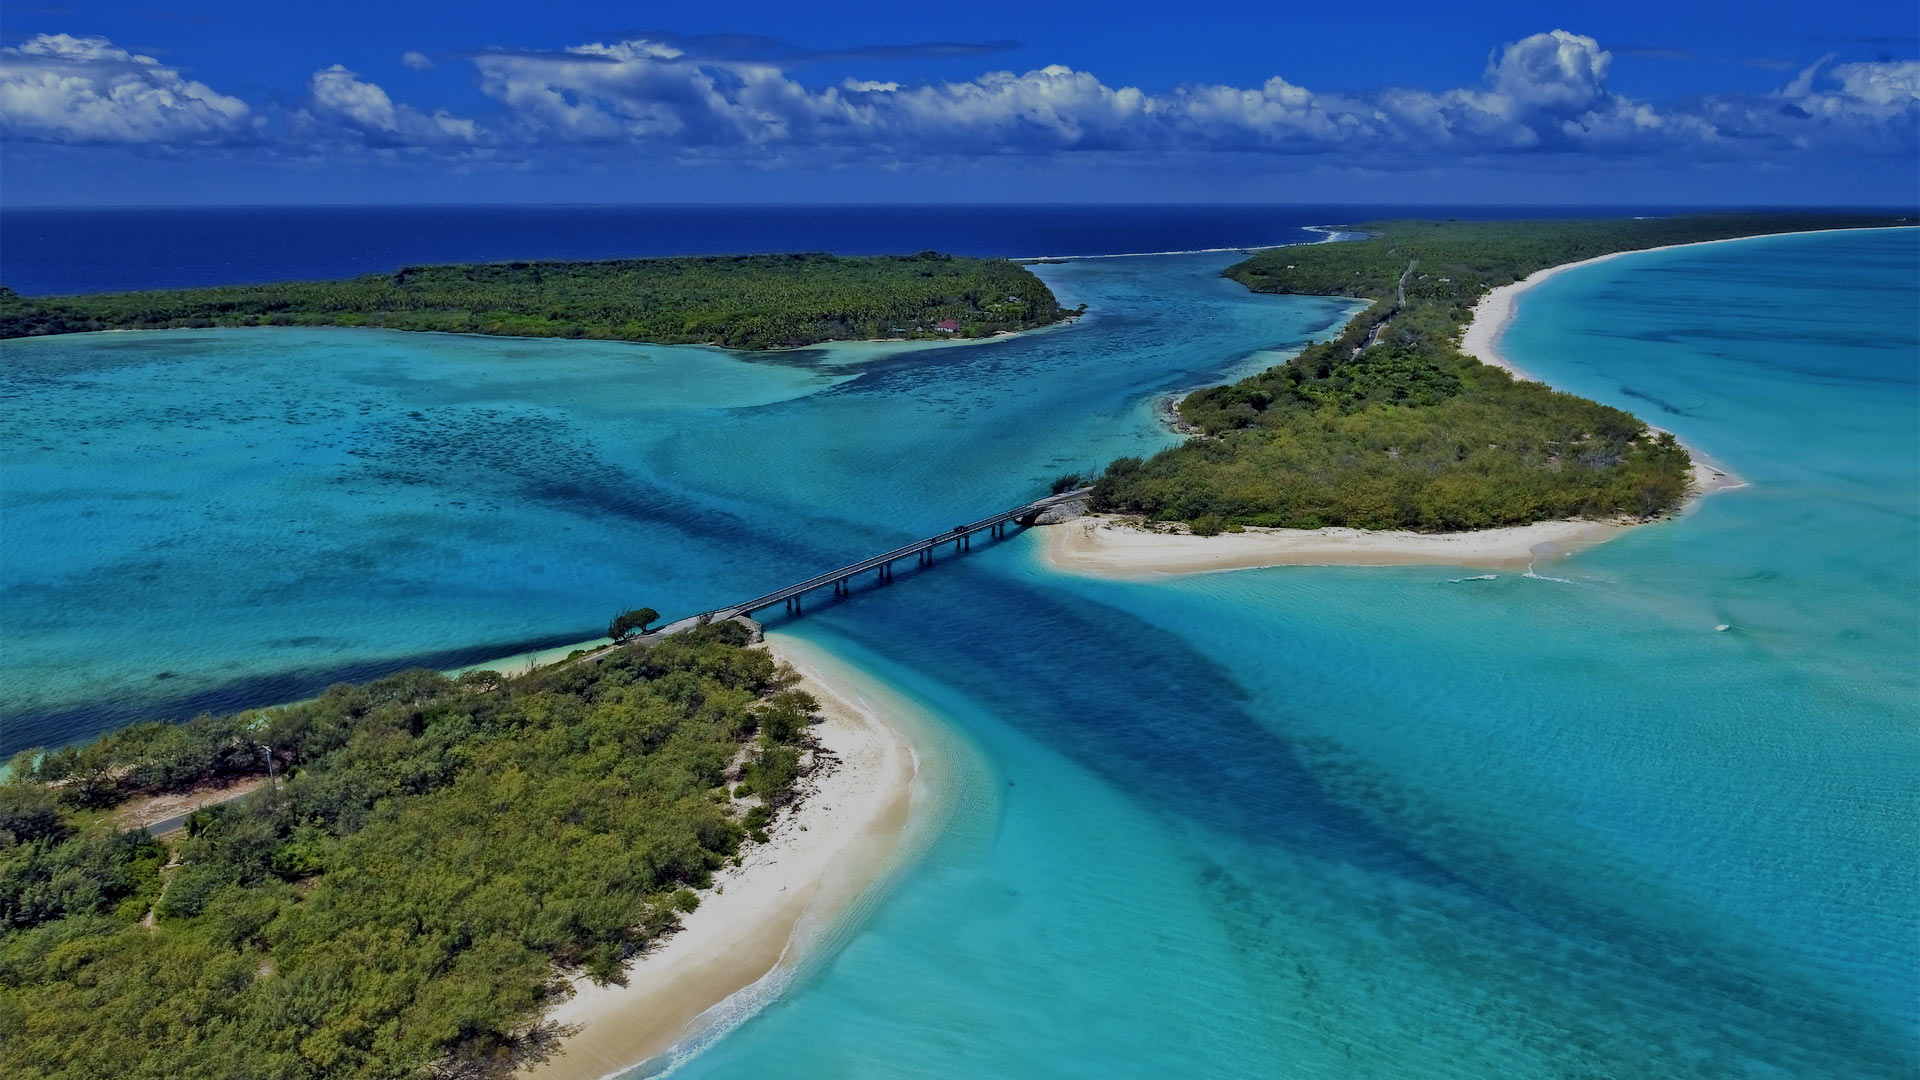 New Caledonia South Pacific Island wallpaper Gallery 1920x1080